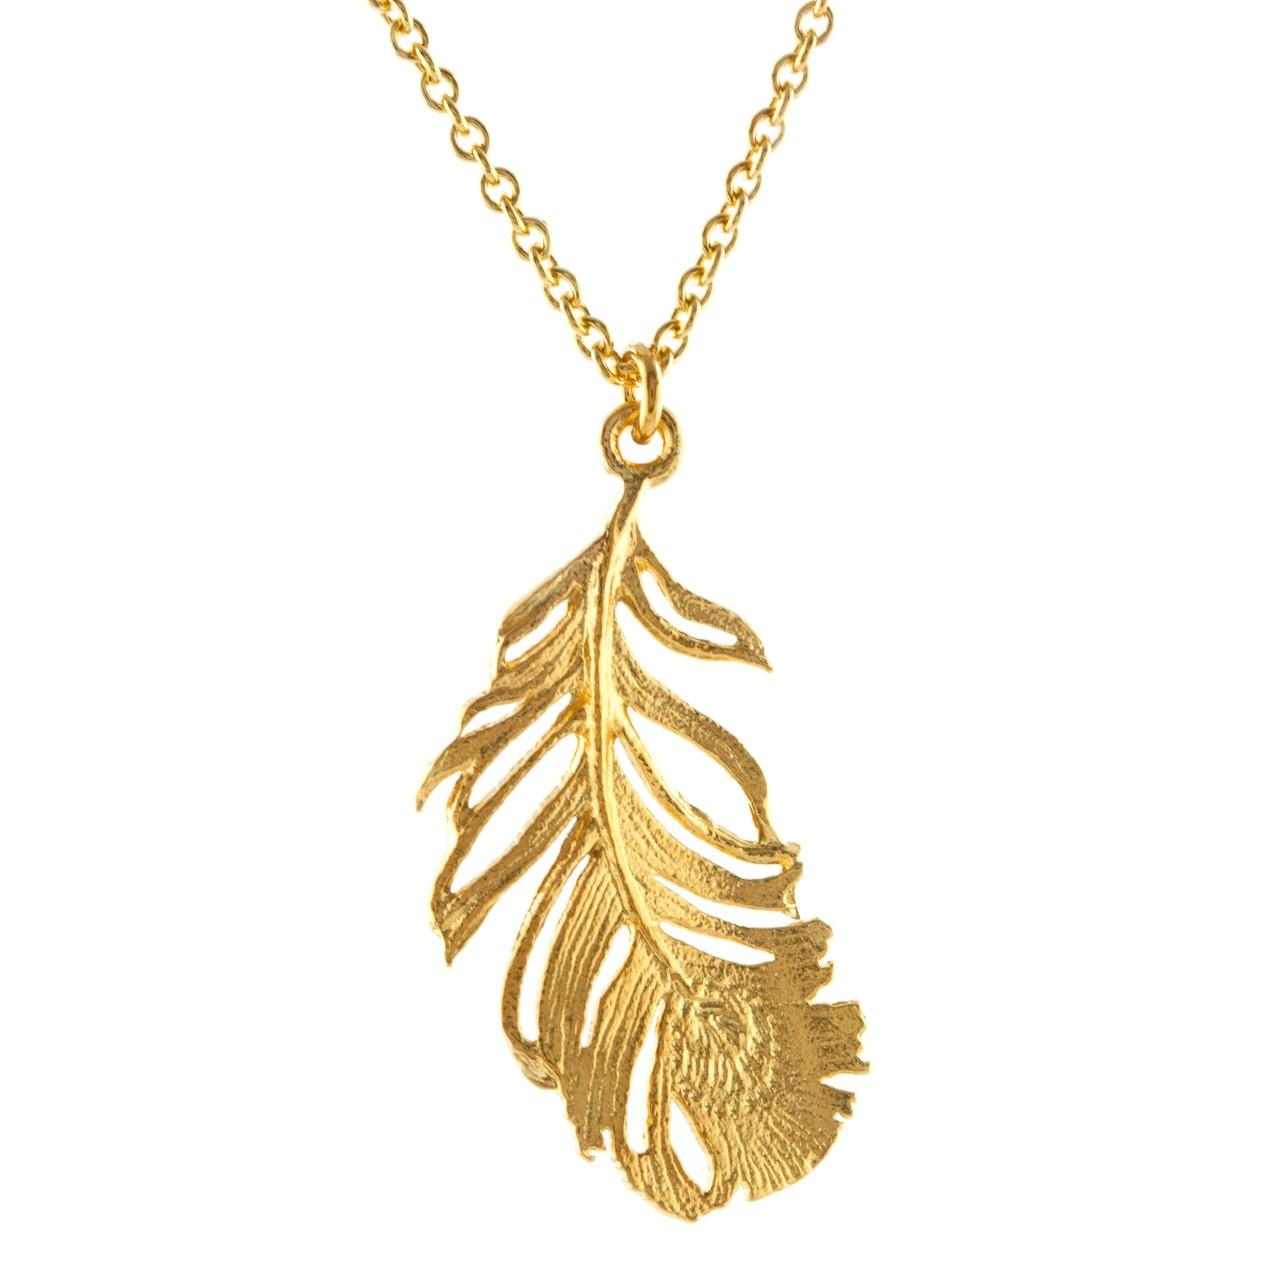 Gold plated on silver large peacock feather necklace £132 (available in store only)